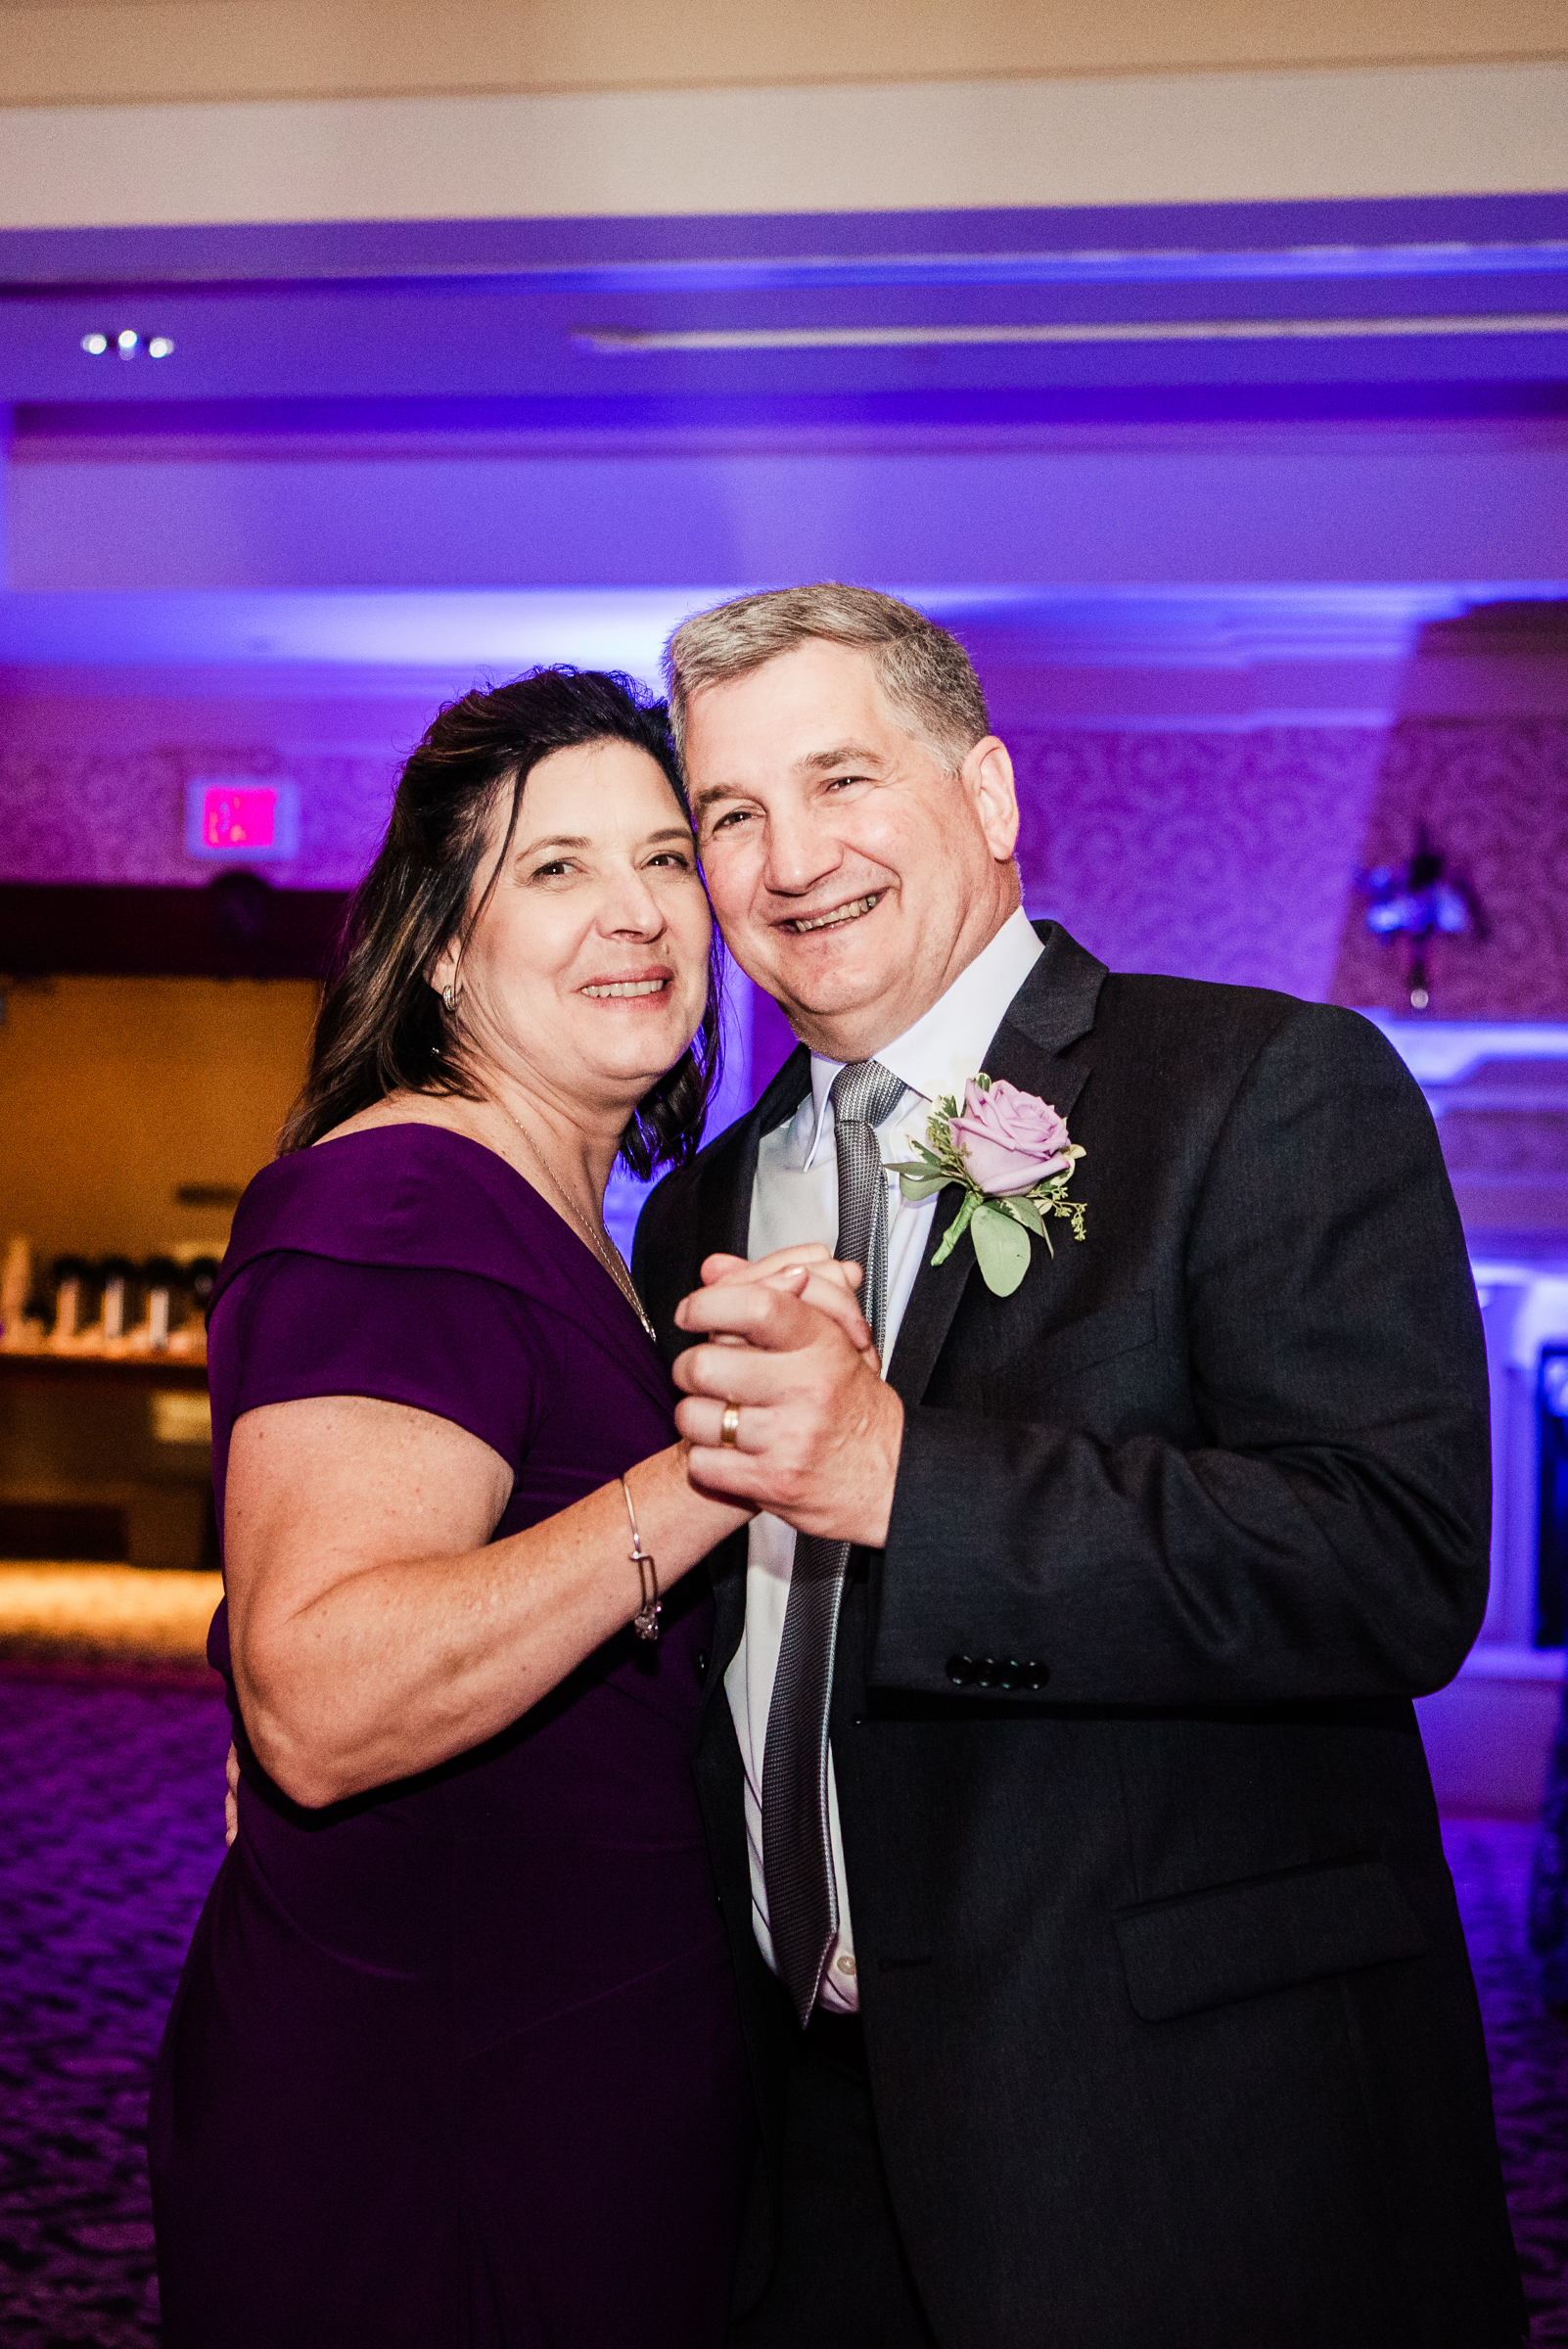 Turning_Stone_Casino_Resort_Central_NY_Wedding_JILL_STUDIO_Rochester_NY_Photographer_DSC_2228.jpg